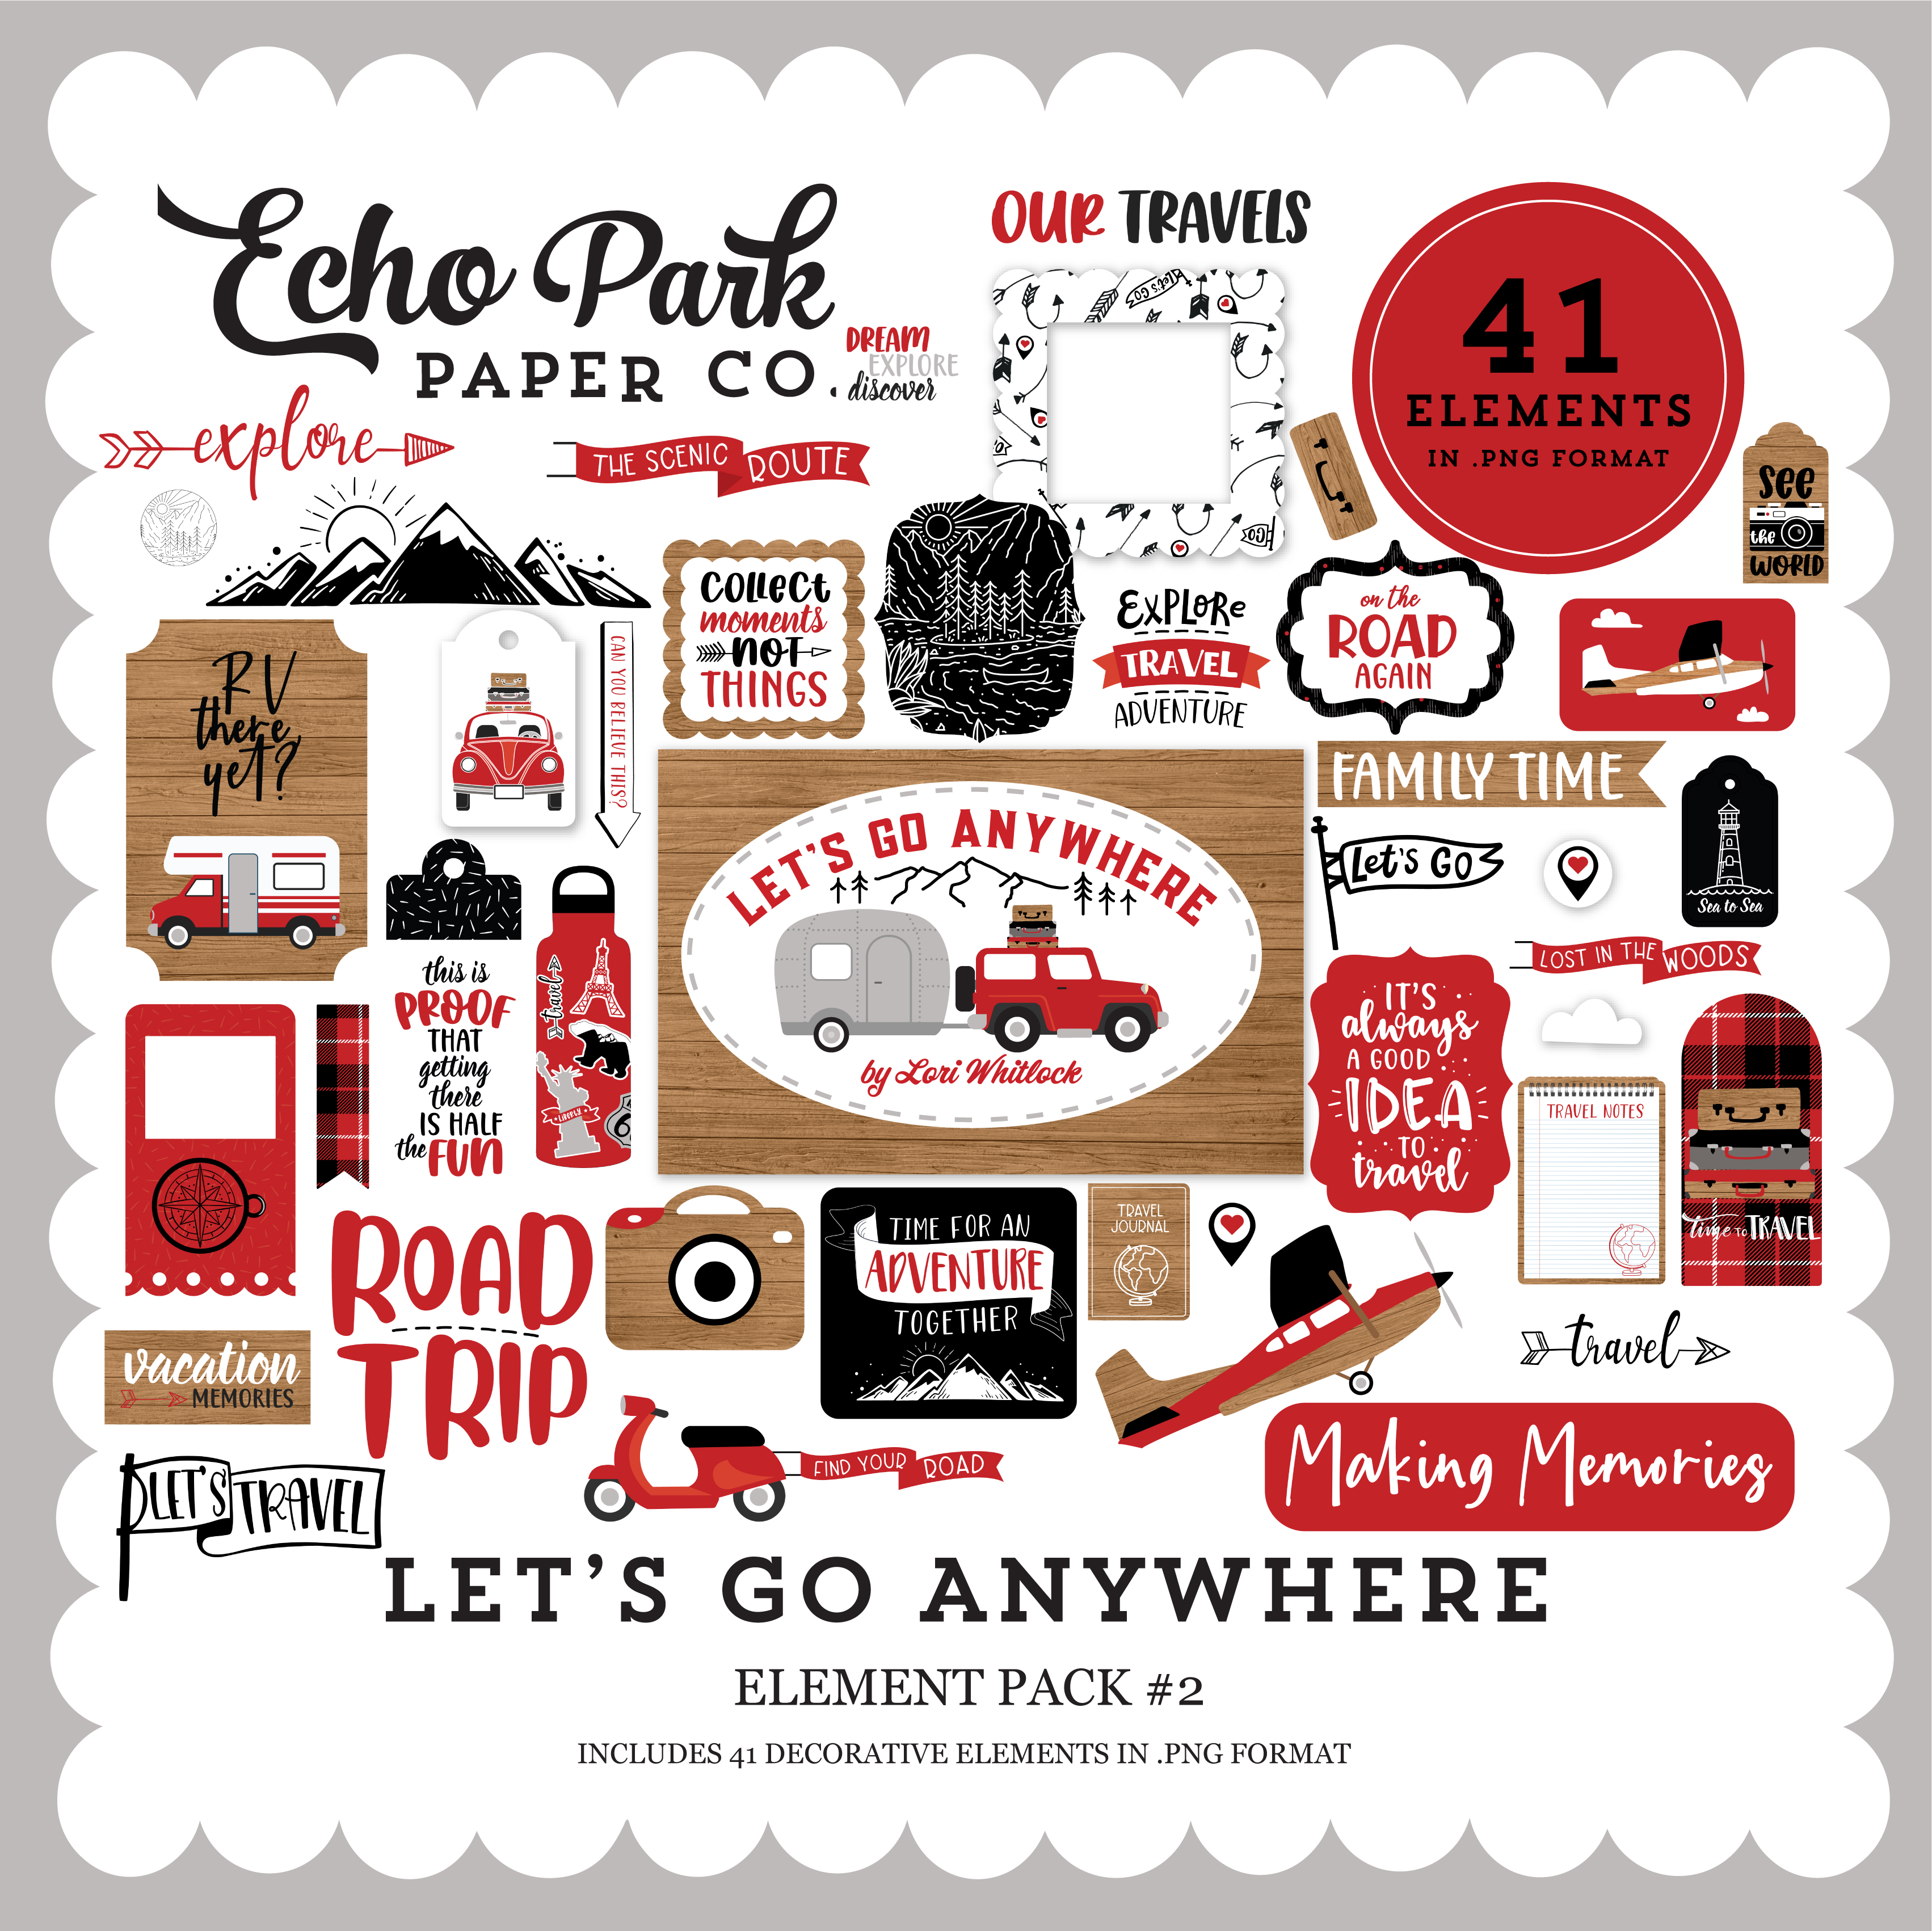 Let's Go Anywhere Element Pack #2